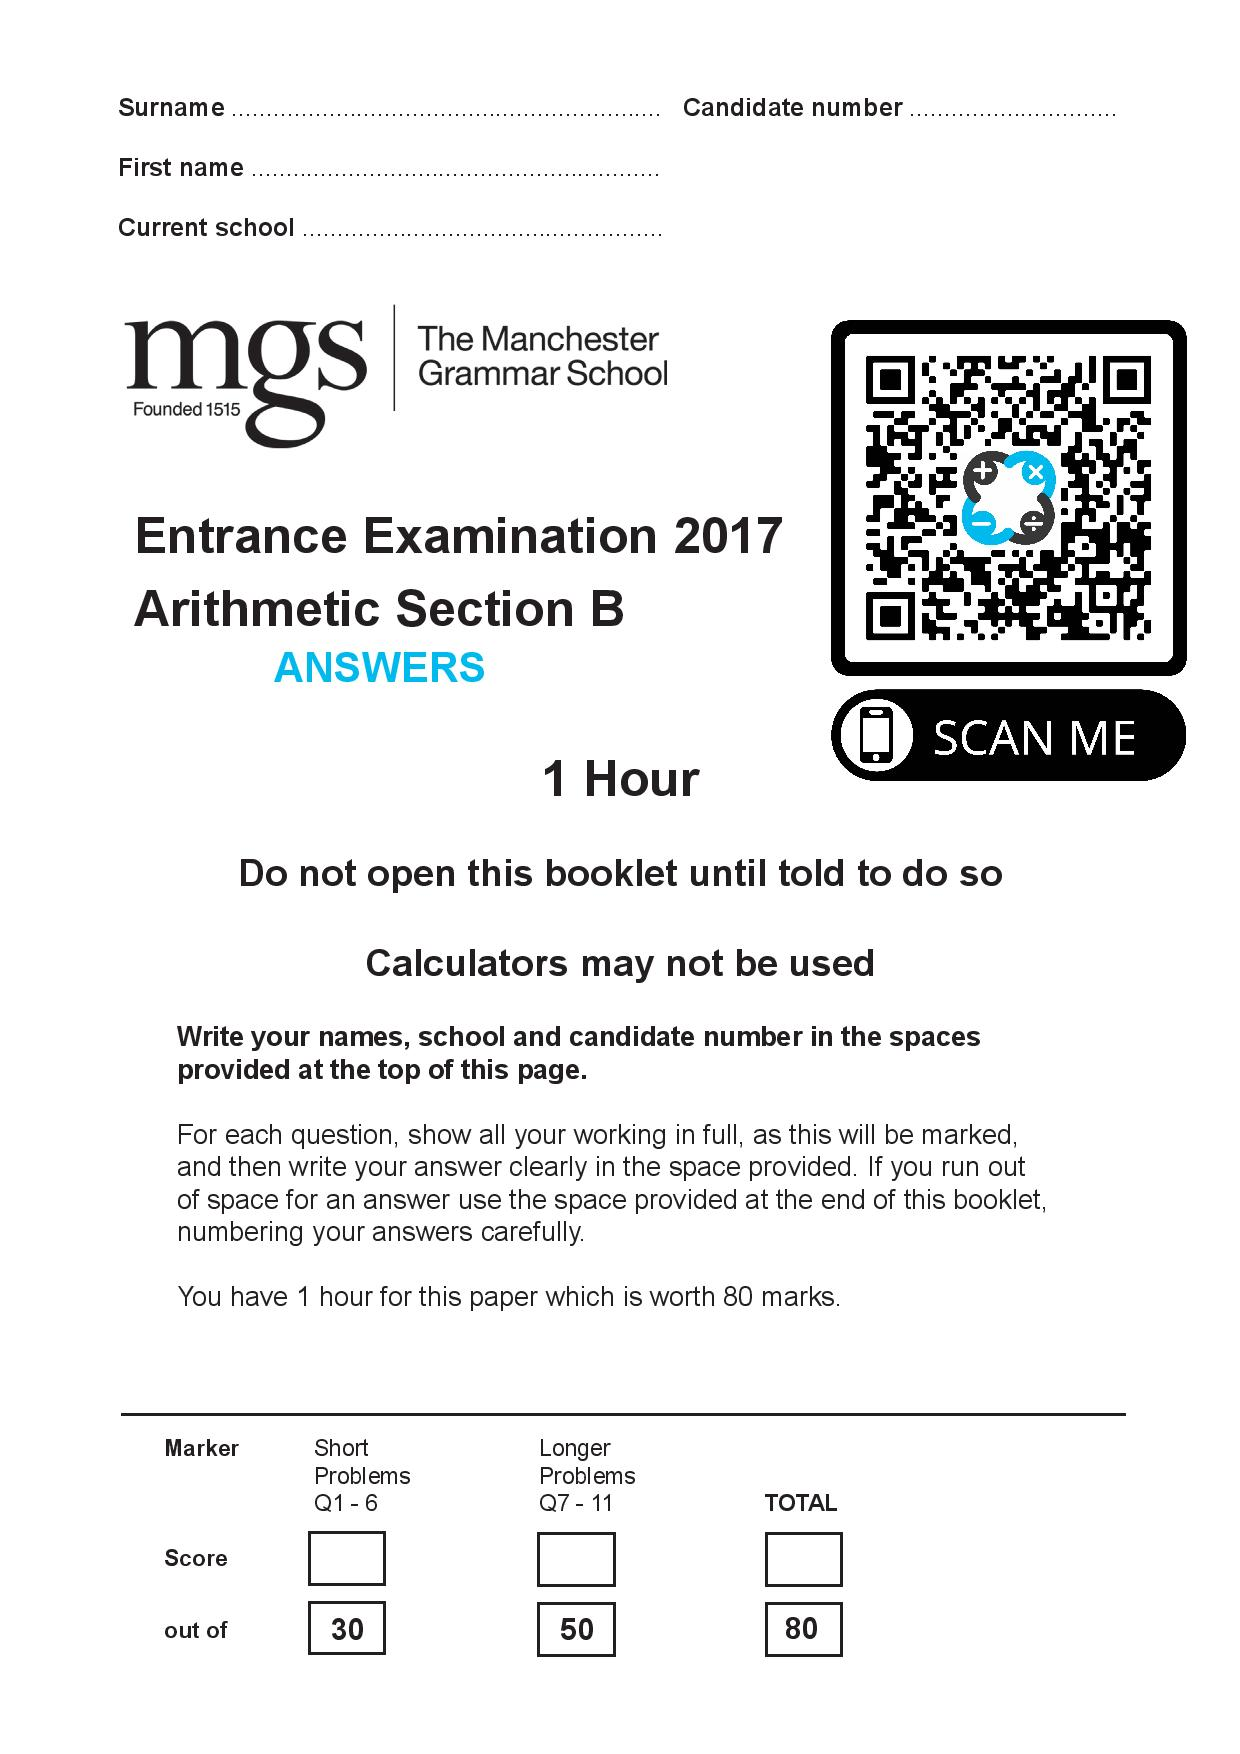 The Manchester Grammar School Entrance Examination 2017 Arithmetic Section B Answer Paper page 001